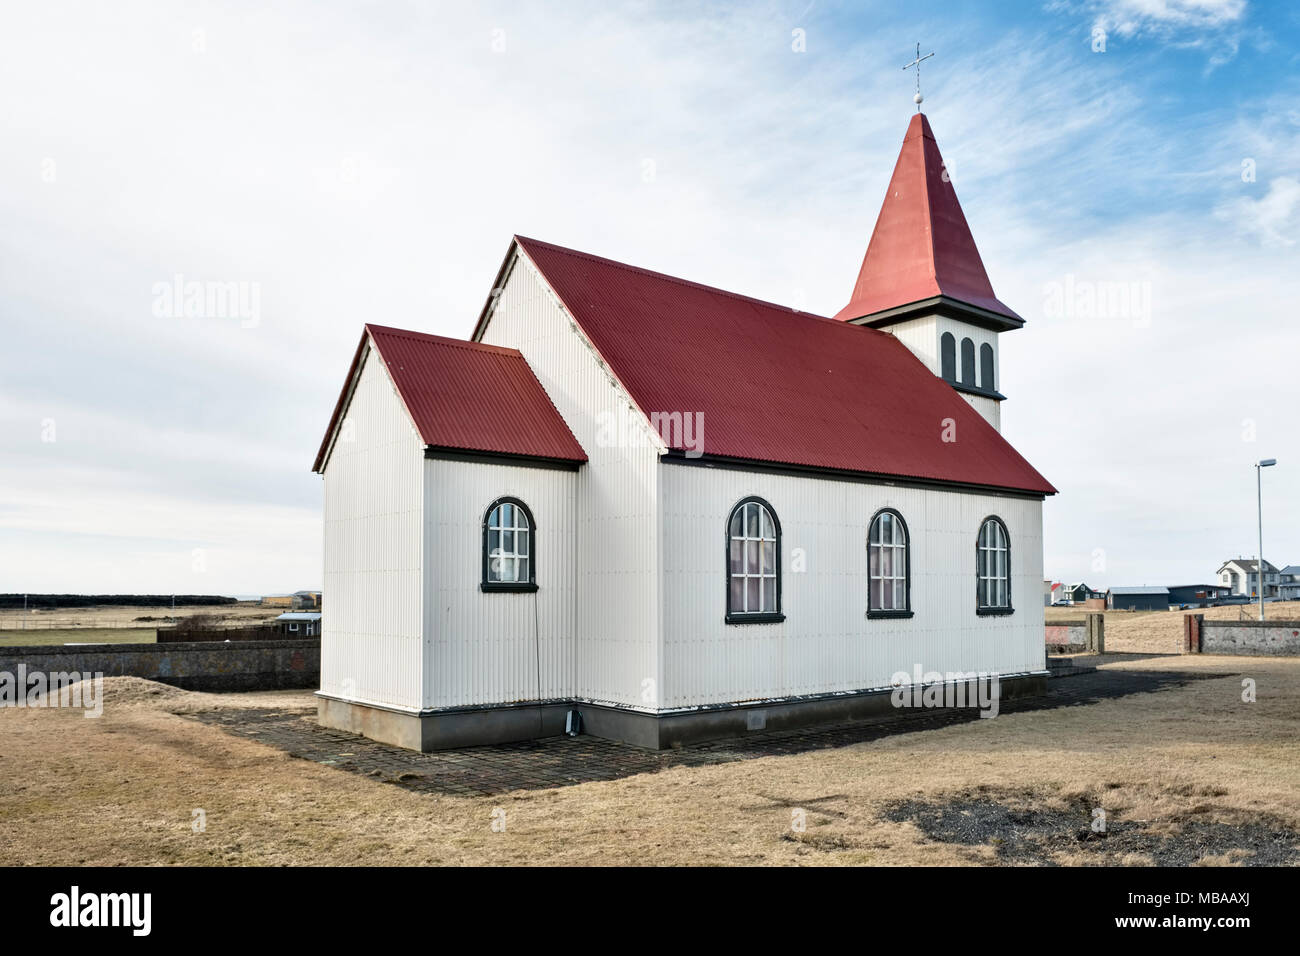 Grindavik, Iceland. The old corrugated iron church was built in 1909 - Stock Image